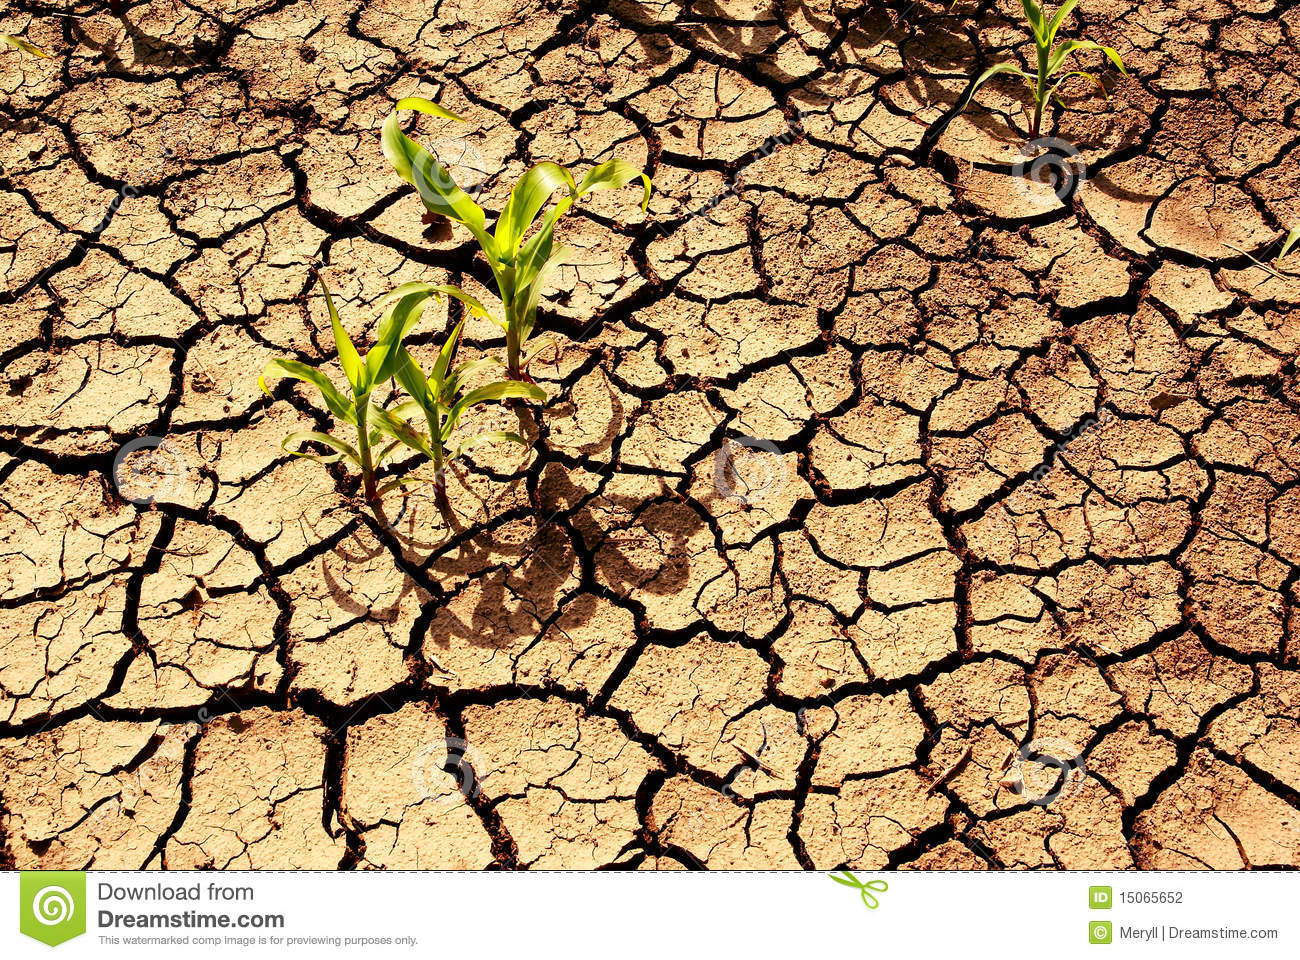 Drought, dry earth.